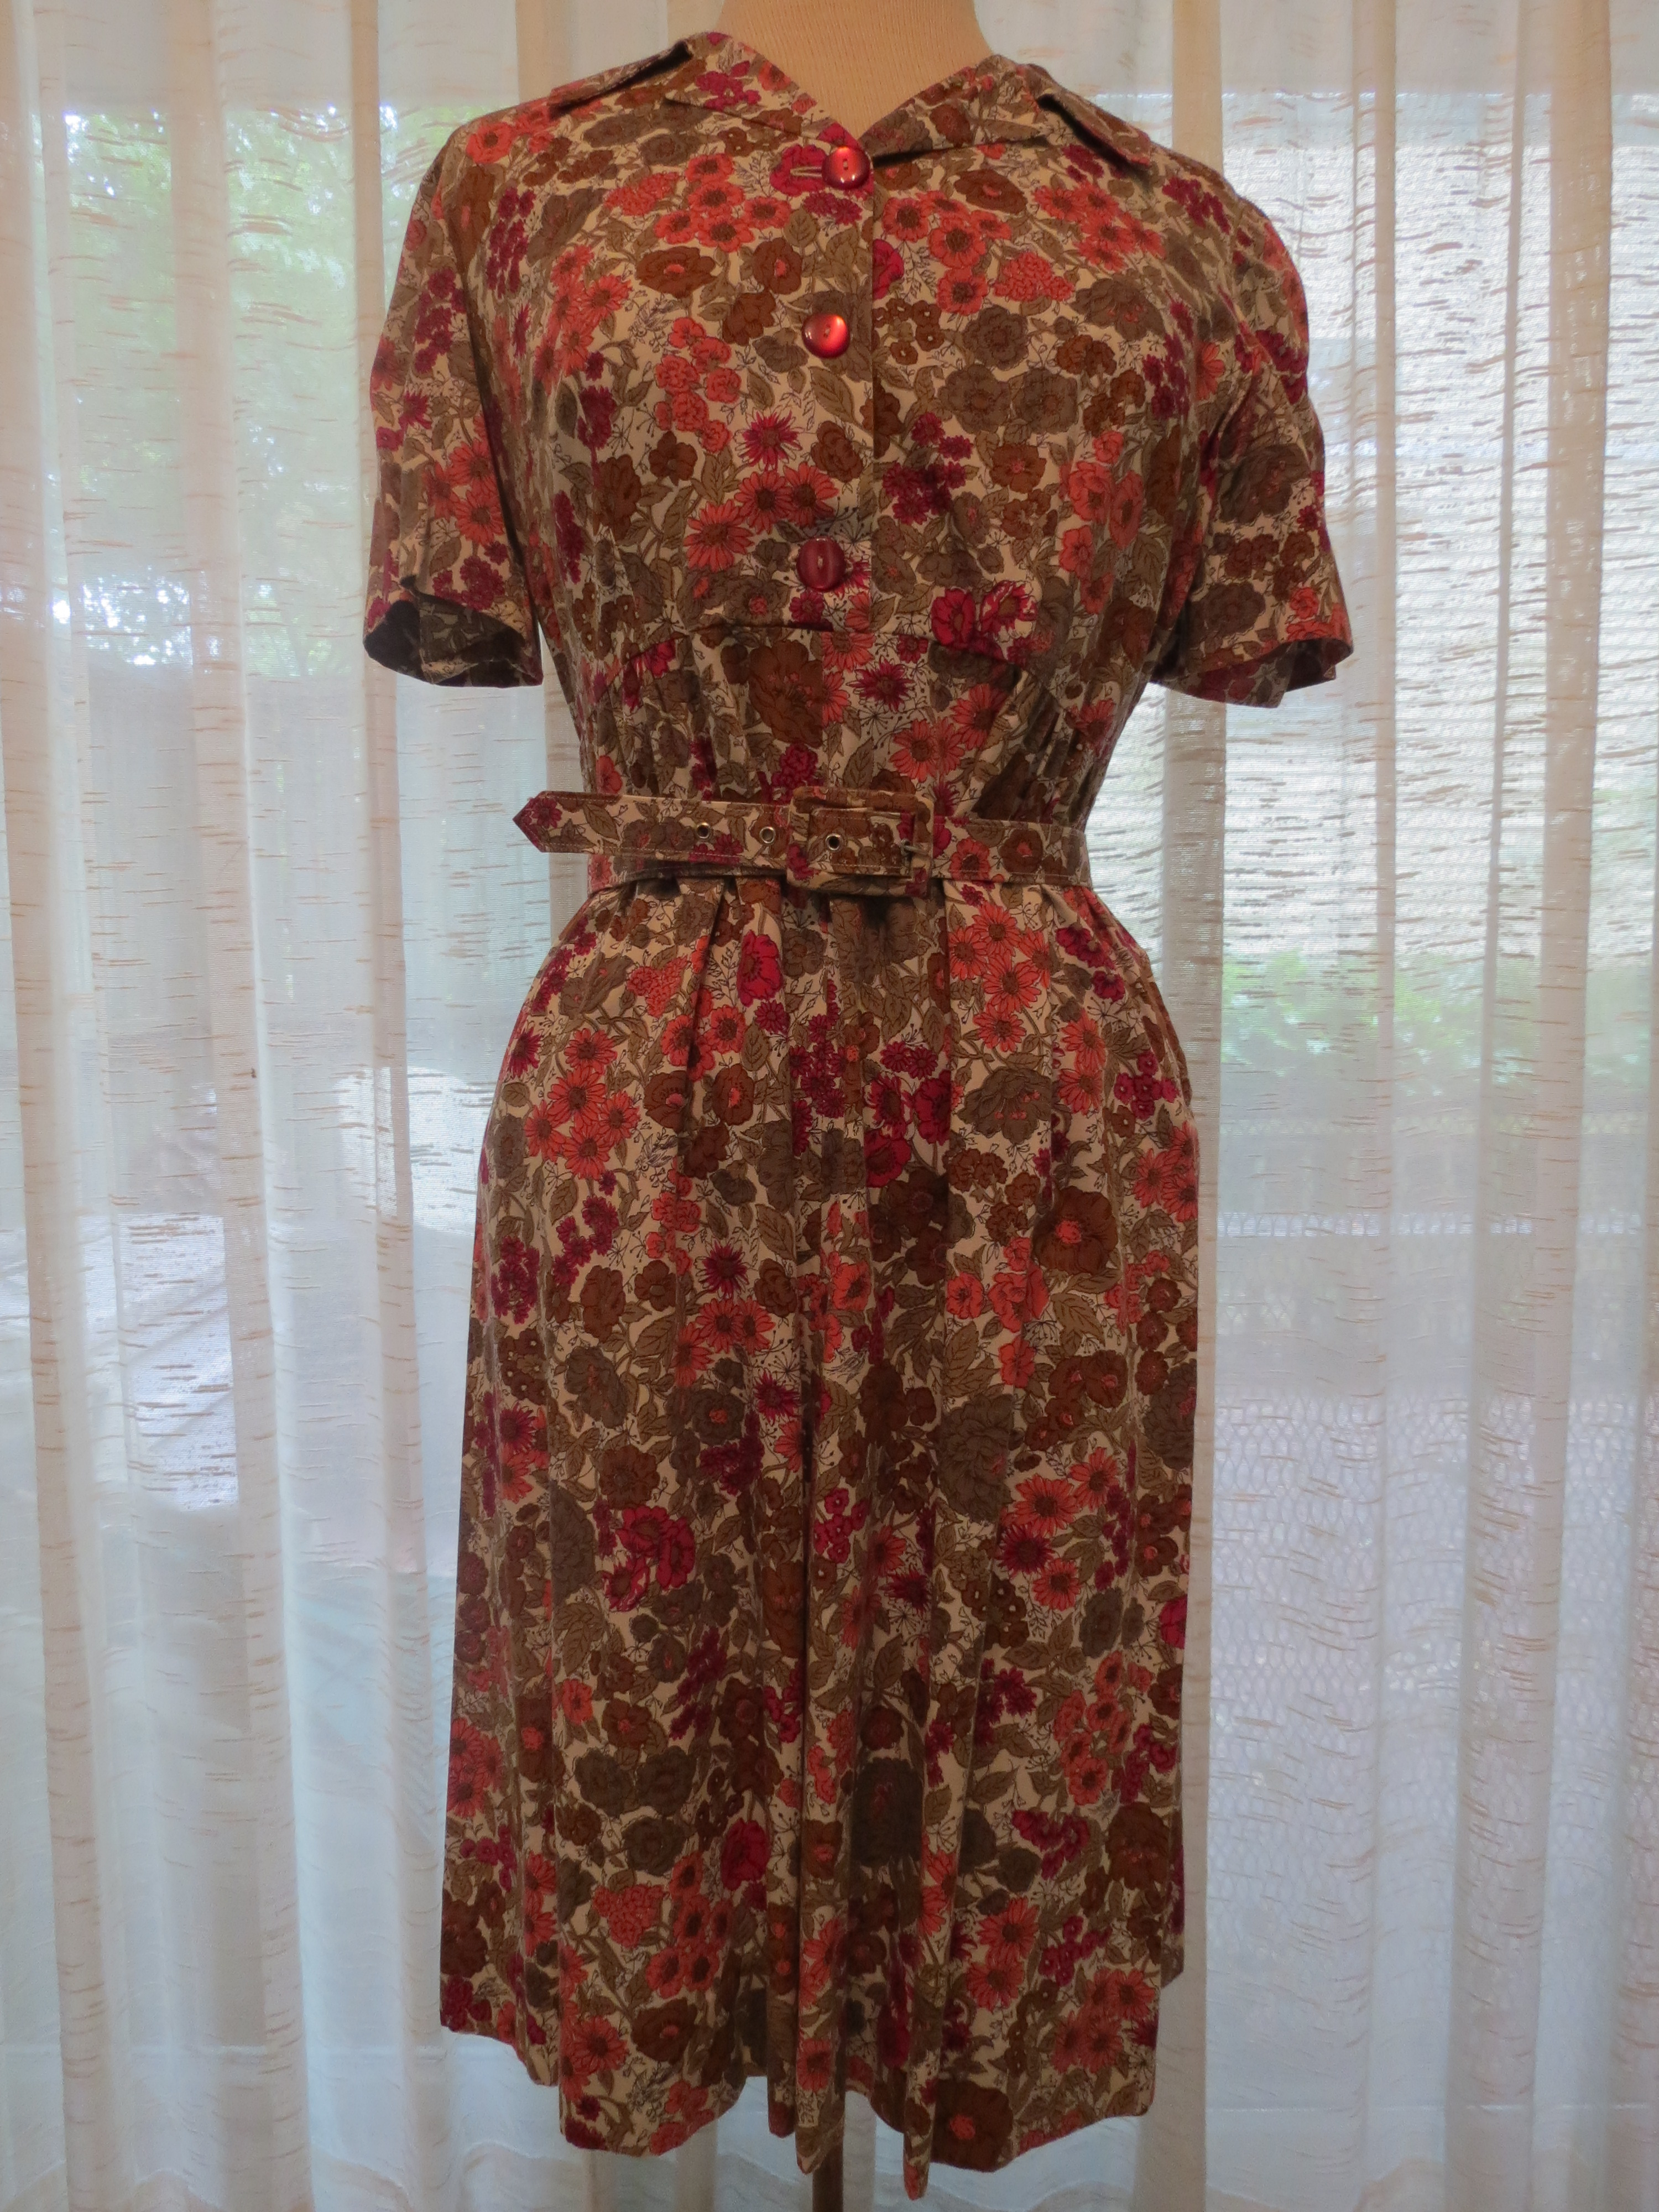 LOVELY COTTON SHIRT-WAIST FROM THE 1950'S - EARLY 1960'S IN FALL COLORS